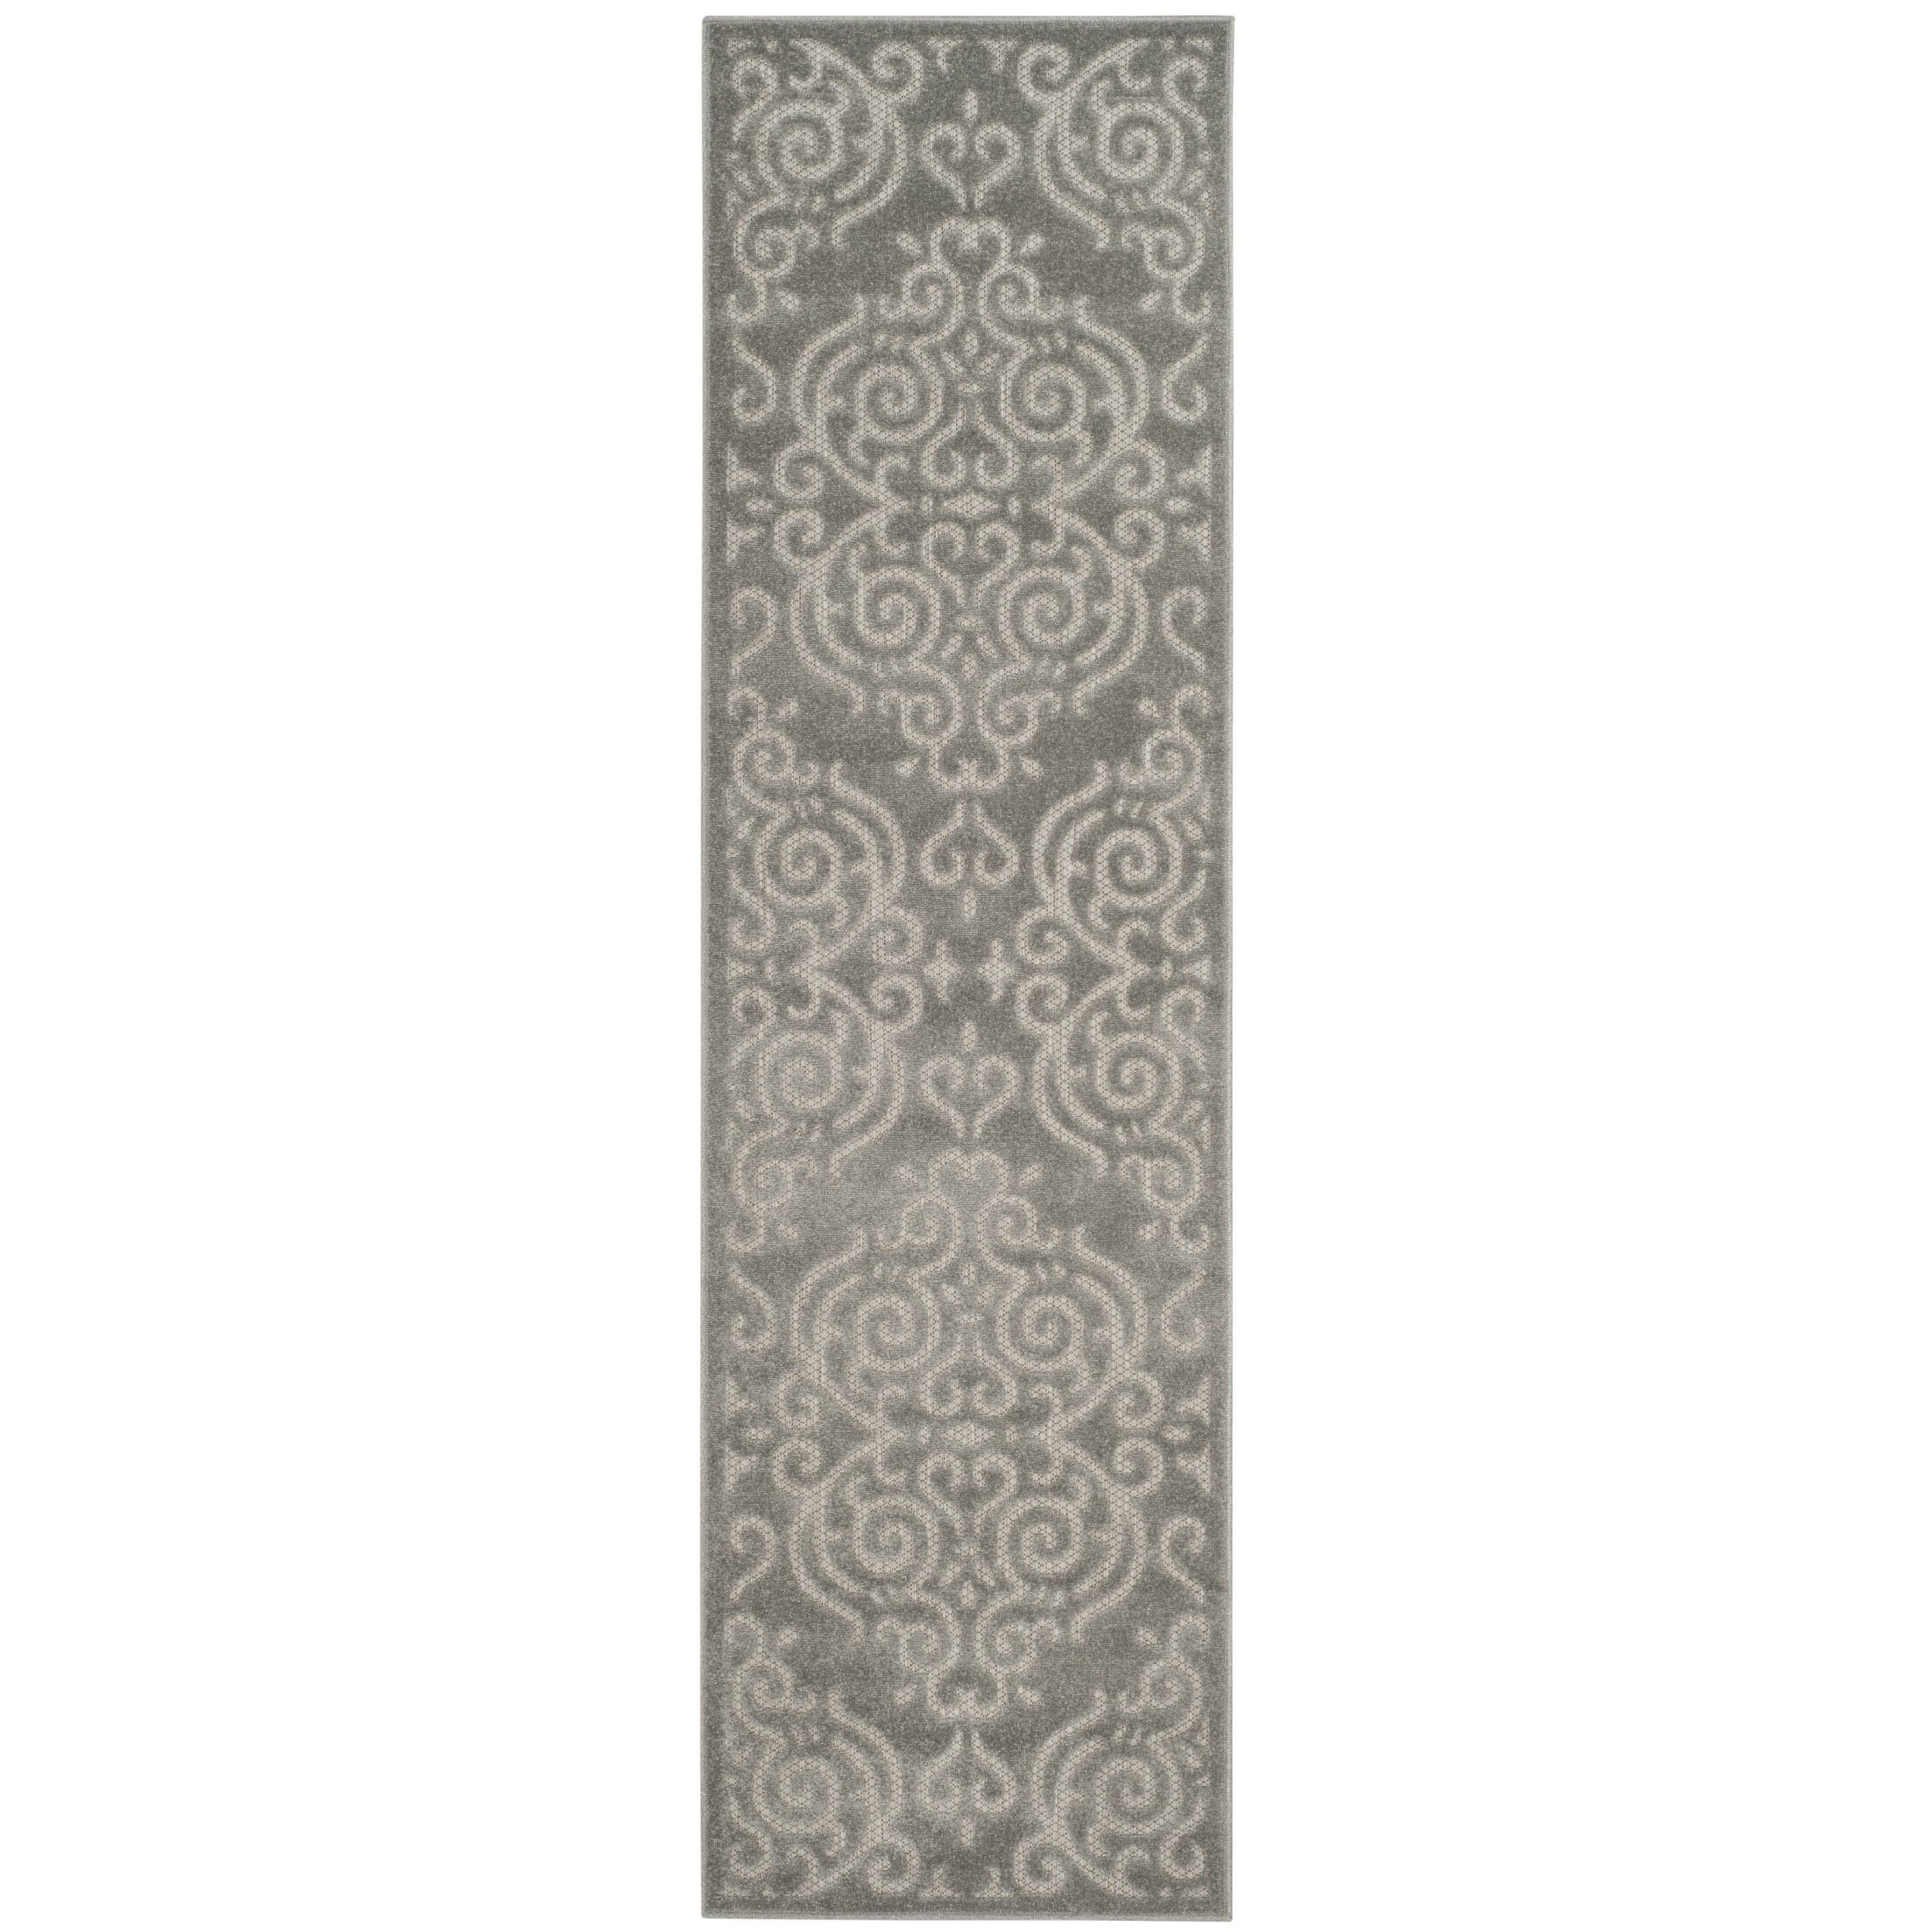 Safavieh Indoor/ Outdoor Cottage Scrolling Vines Grey/ Light Grey Runner (2' x 8') (COT932C-28), Size 2' x 8' (Polyester, Geometric)